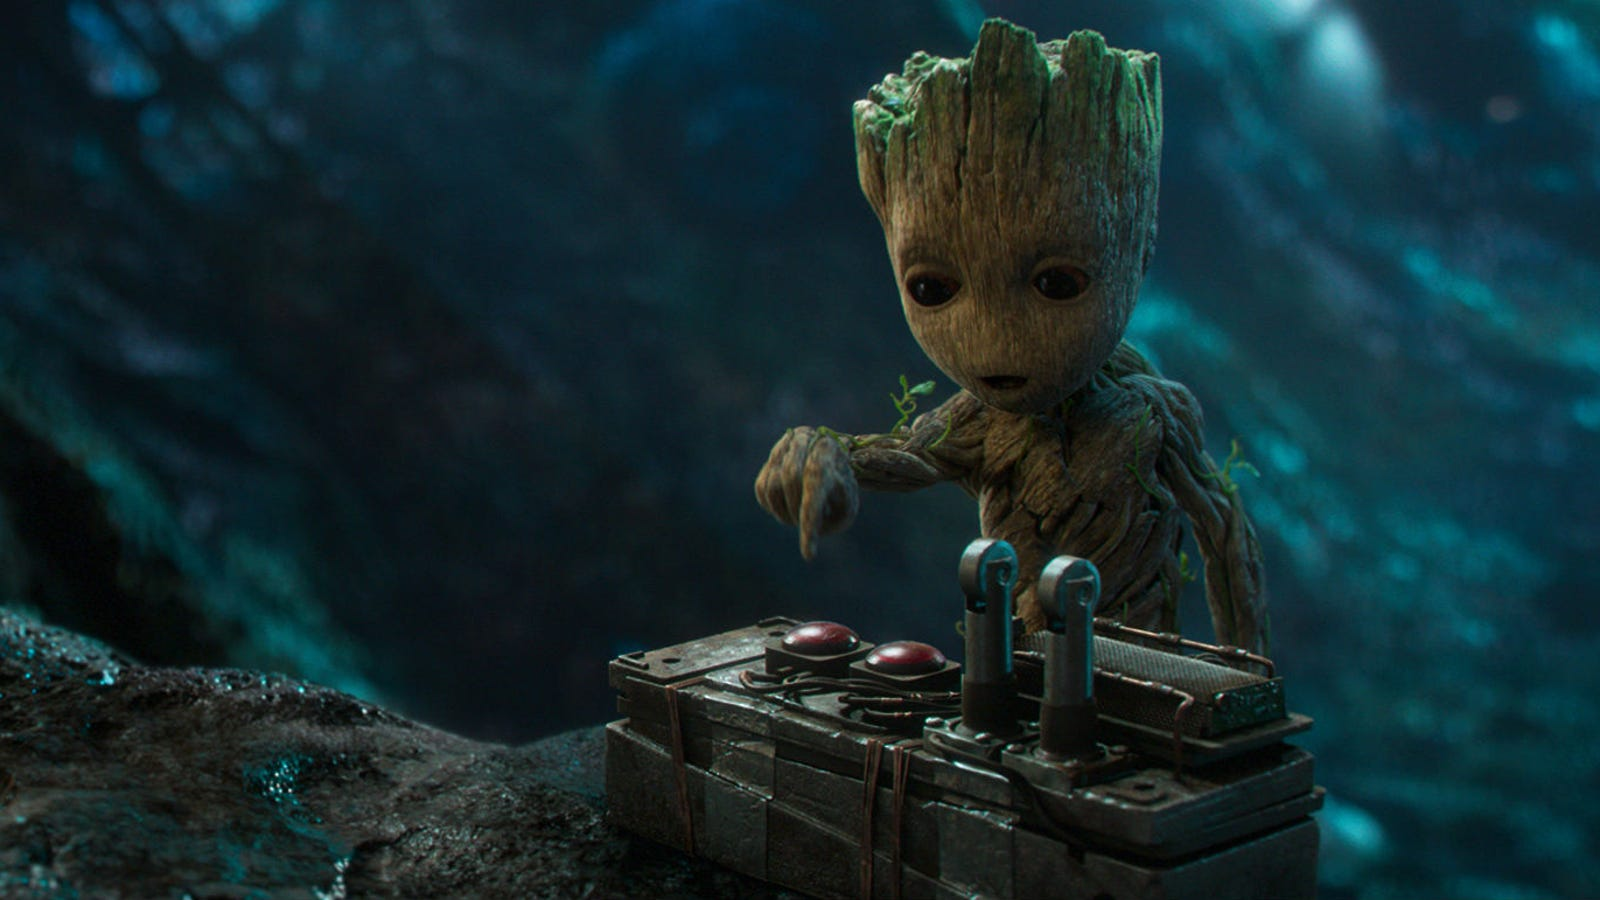 The Score From Guardians of the Galaxy Vol. 2 Sounds as Good as Its Pop Songs